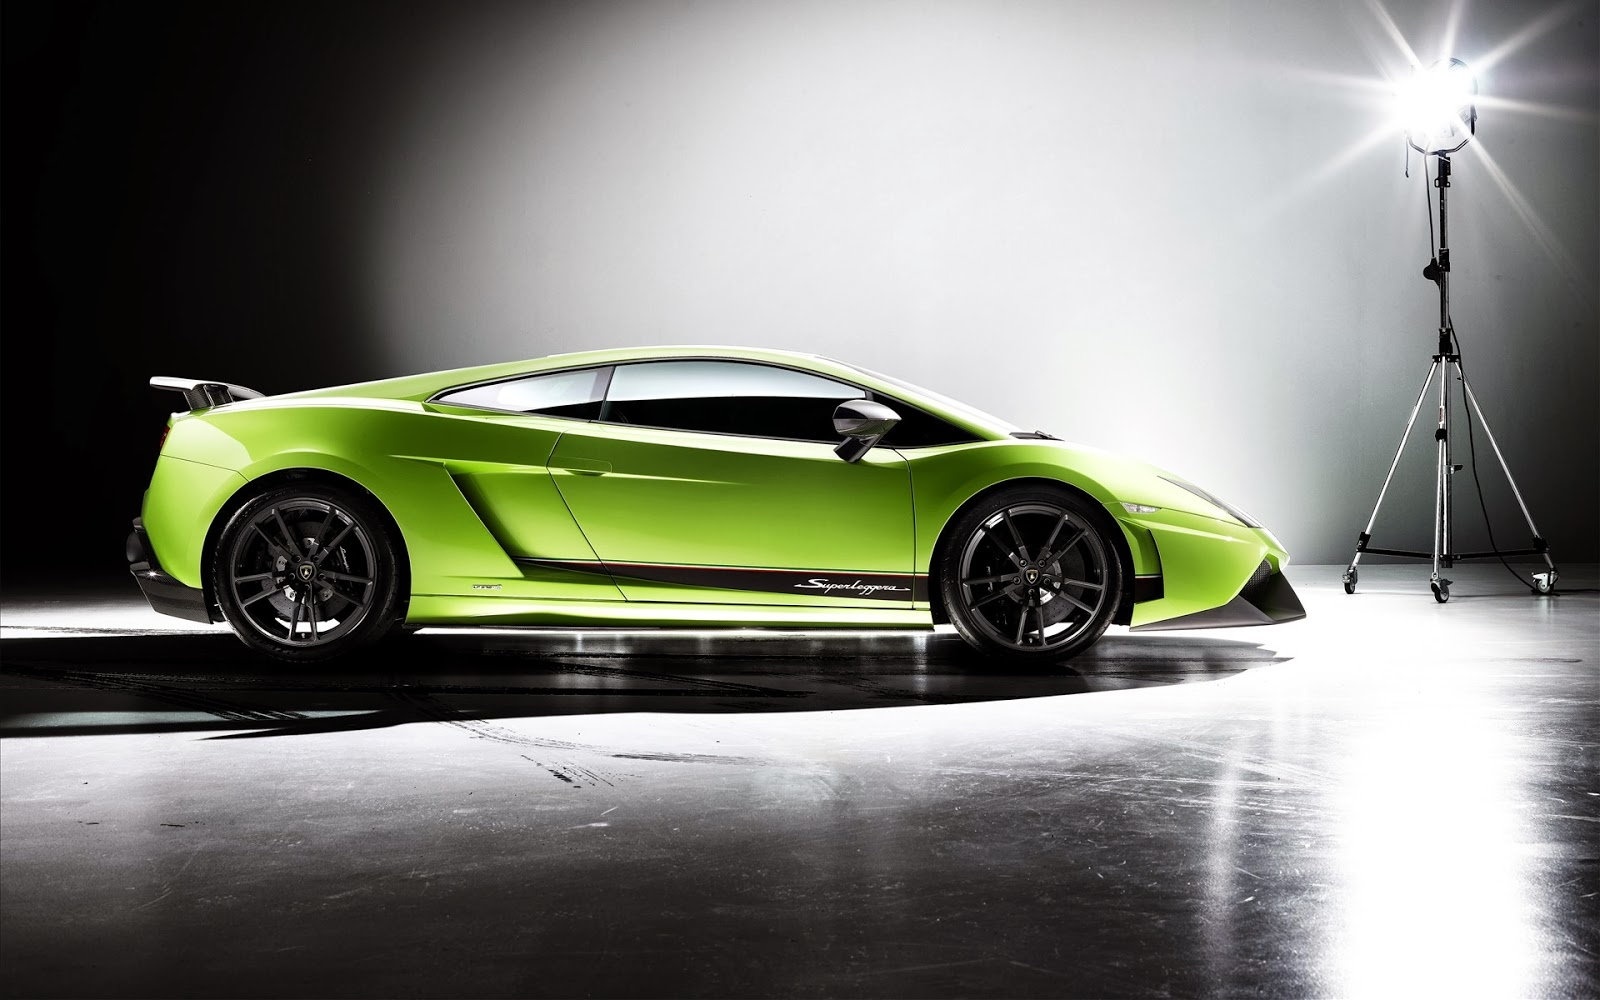 wallpapers of beautiful cars lamborghini gallardo lp570 4. Black Bedroom Furniture Sets. Home Design Ideas